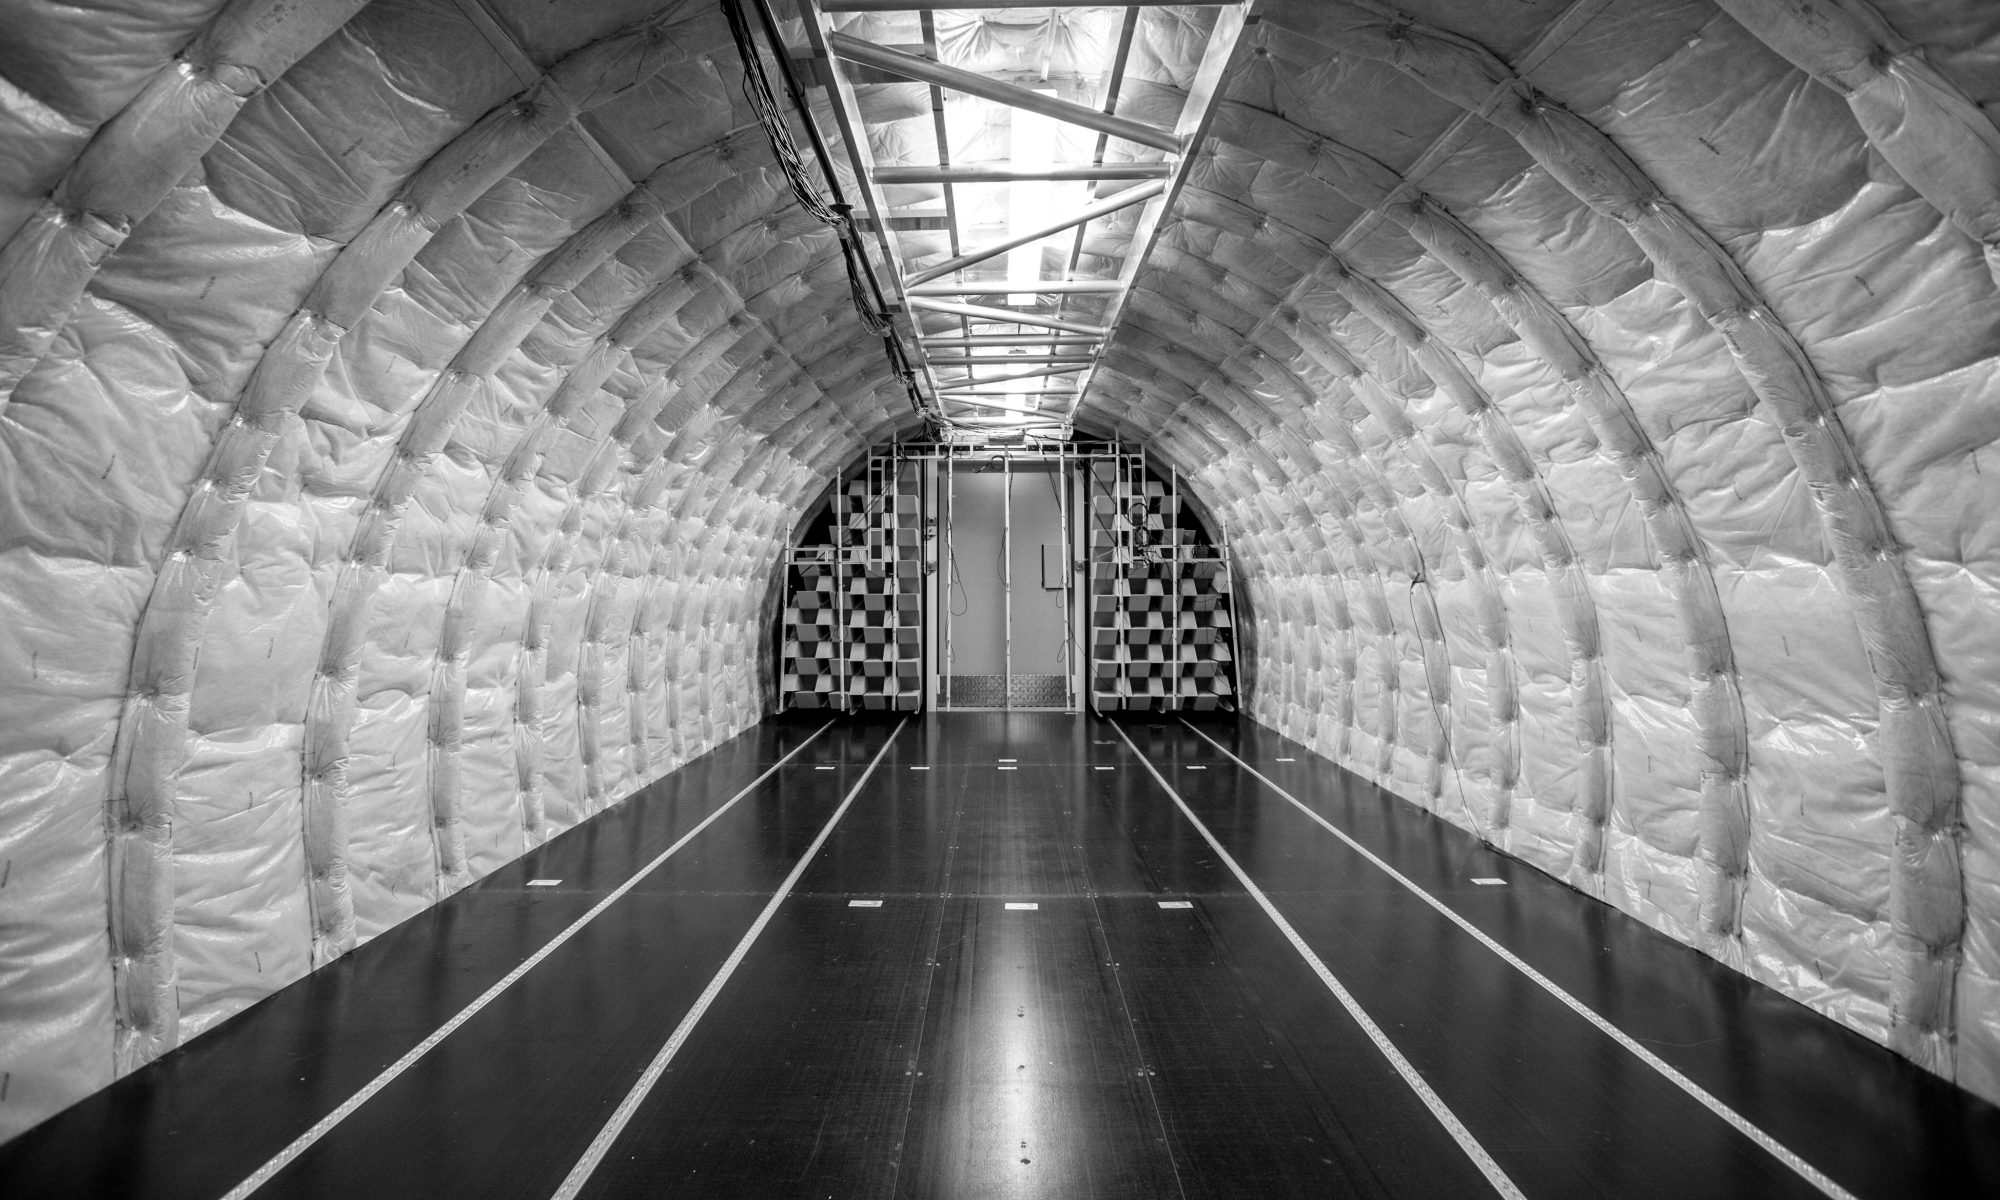 New Acoustic Insulation Metamaterial Technology for Aerospace